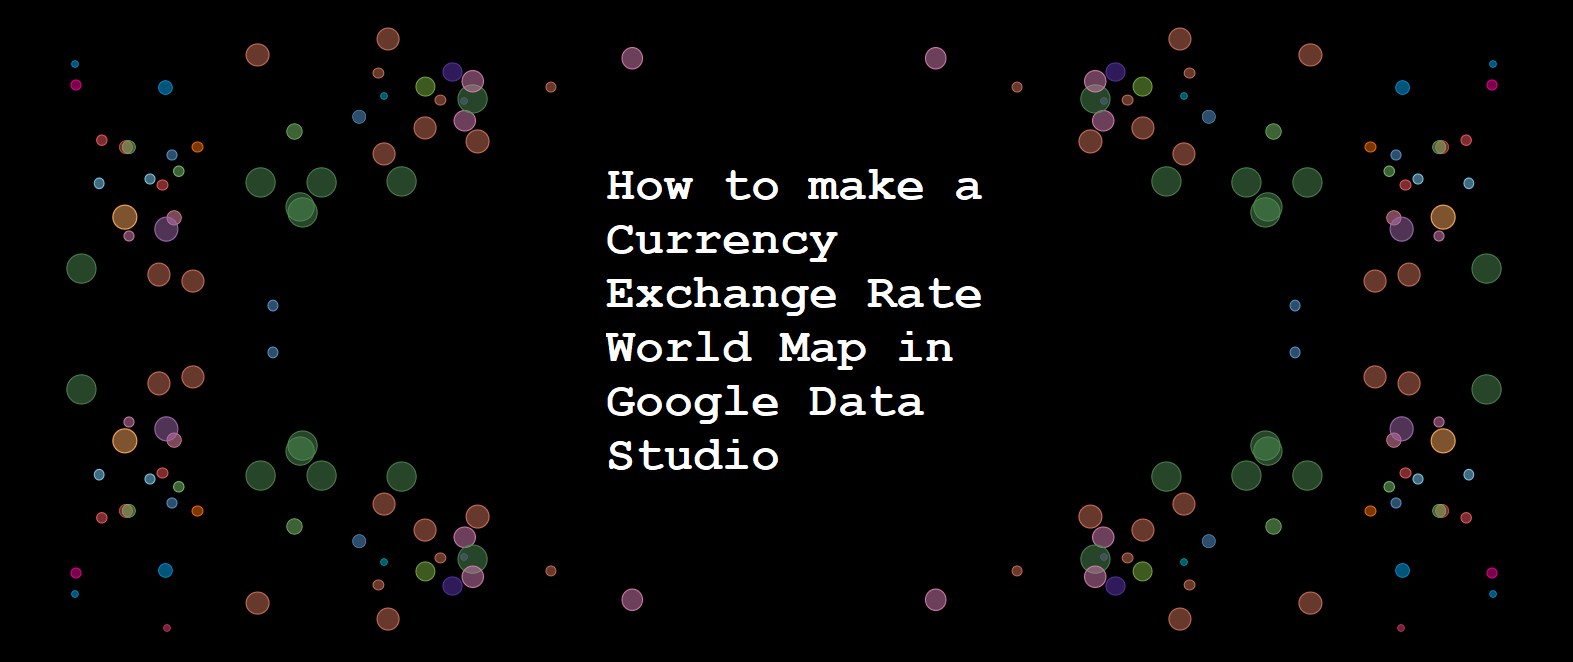 How to make a Currency Exchange Rate World Map in Google Data Studio